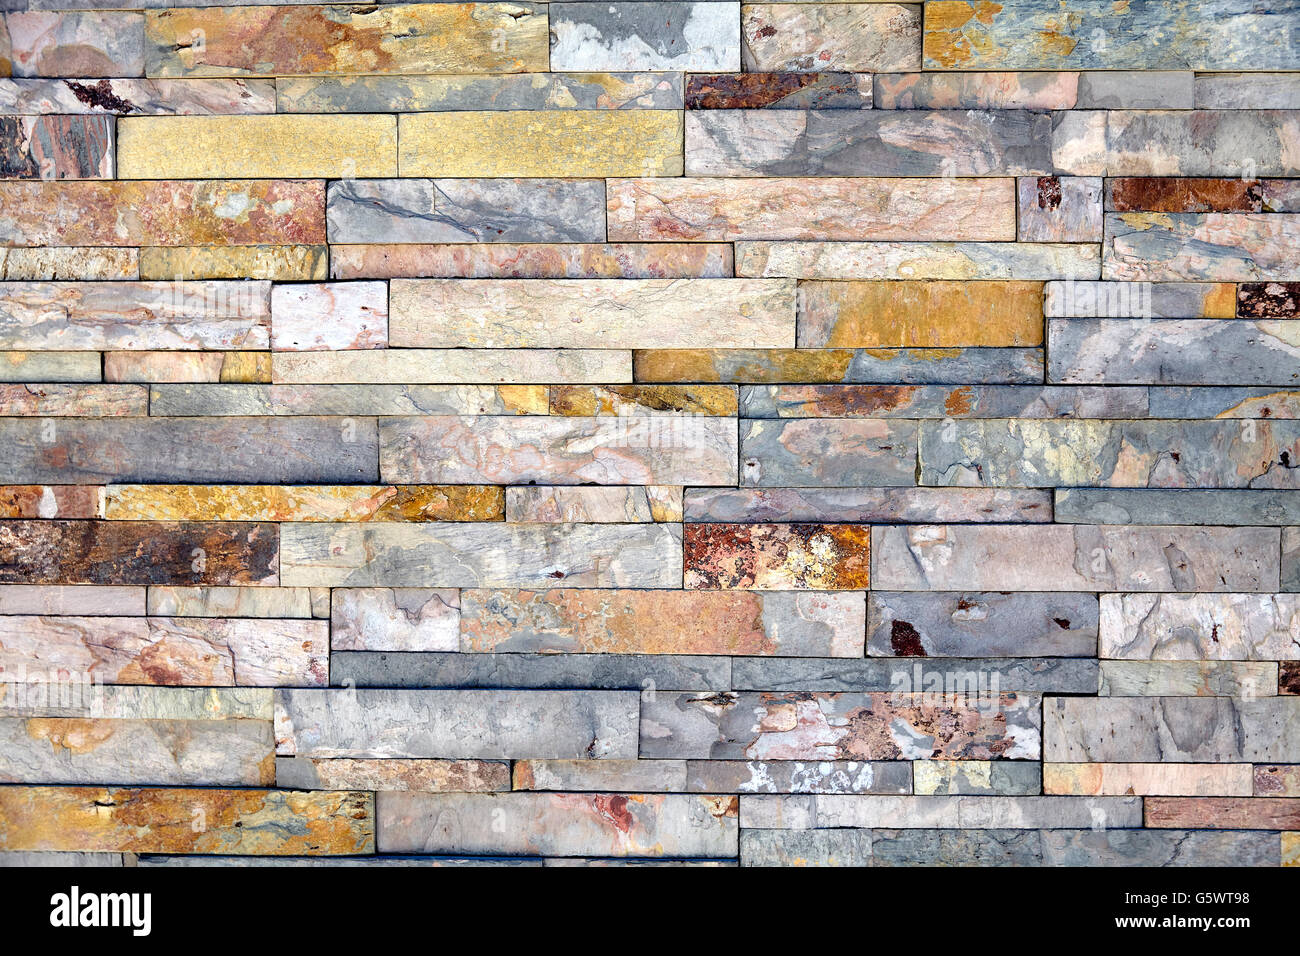 Stone Construction Materials : Natural stone materials in classic building patterns and